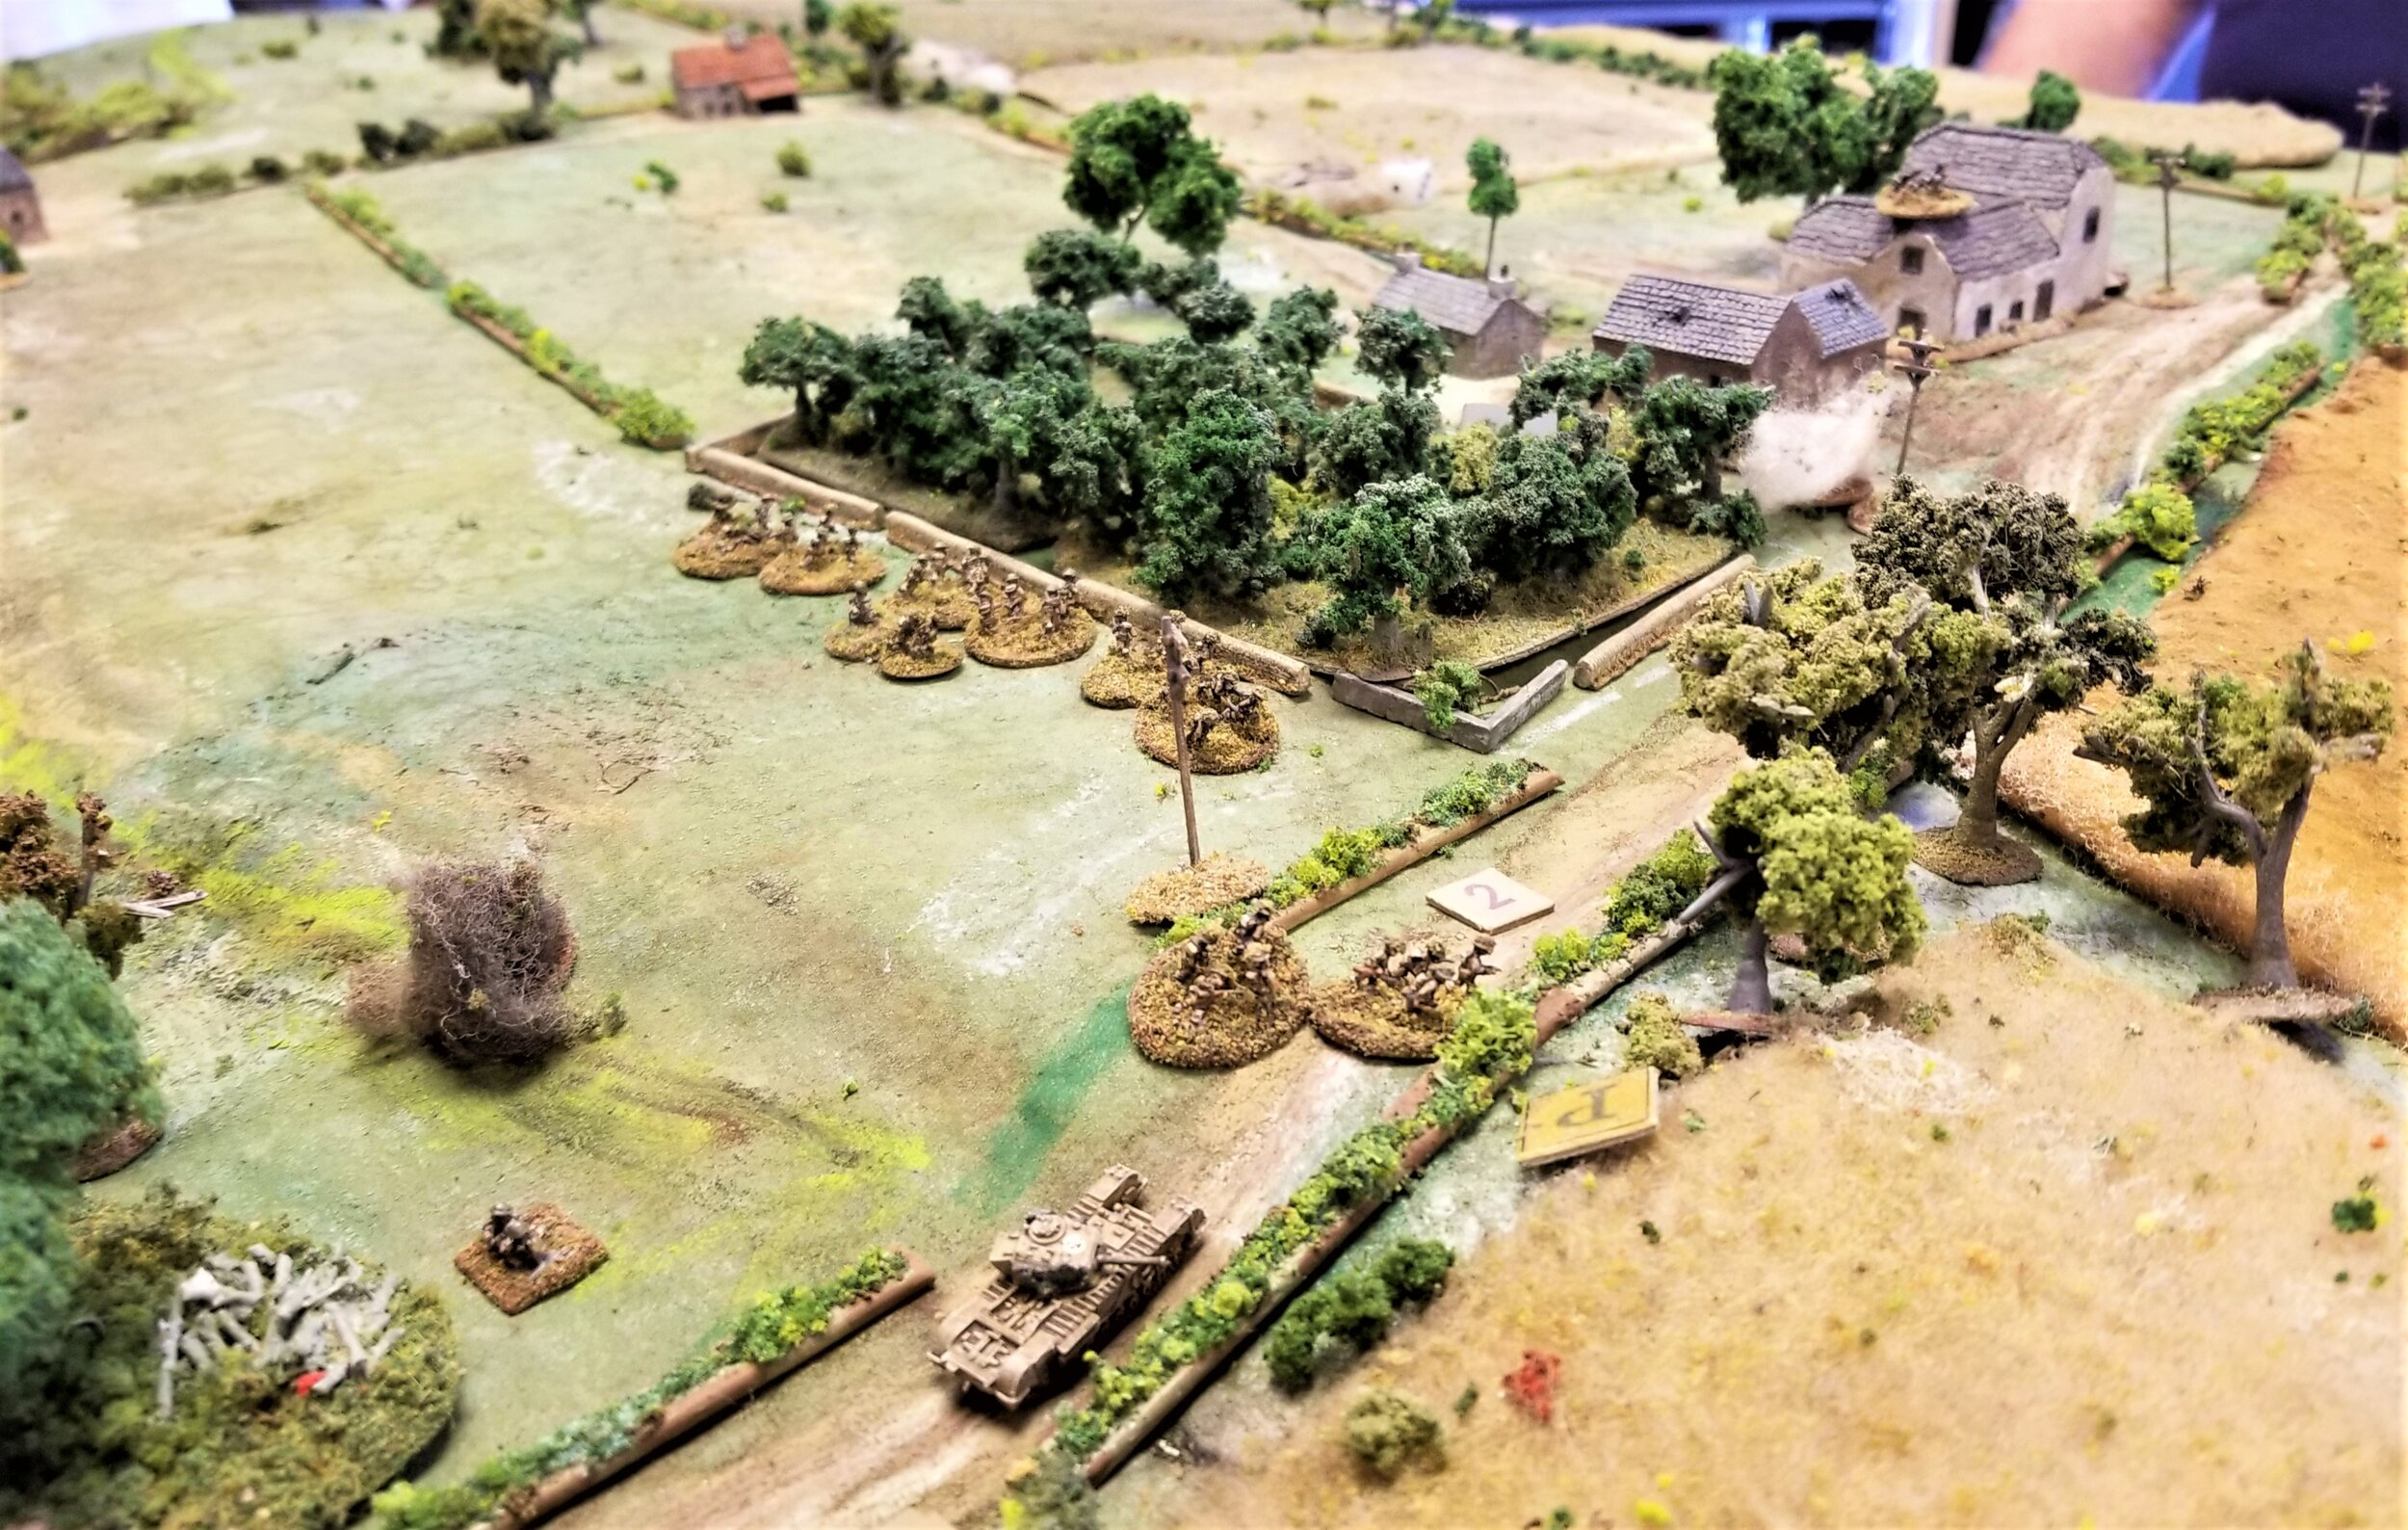 First attack on the ridge buildings